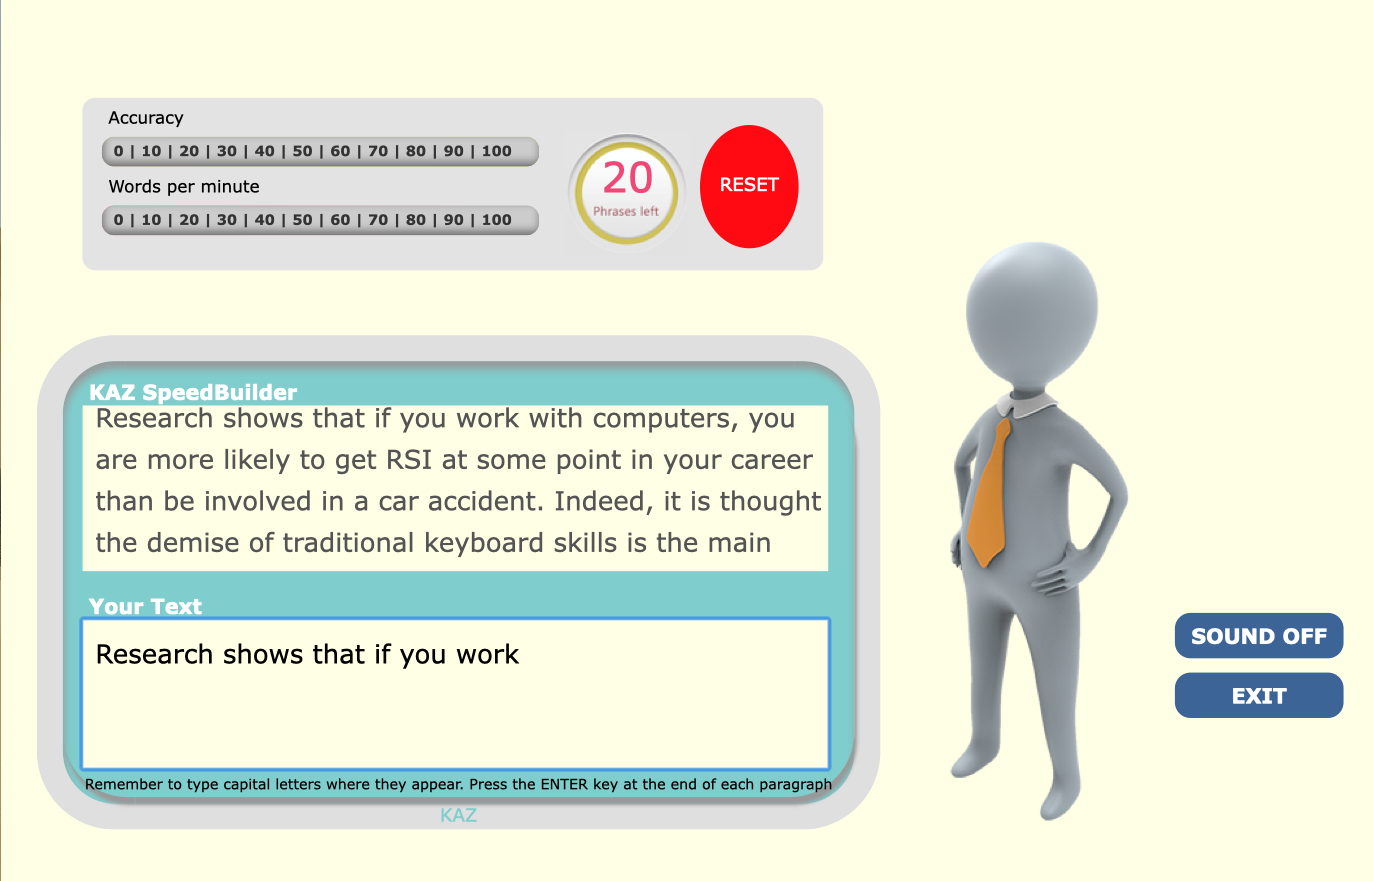 The speed builder module in KAZ typing software